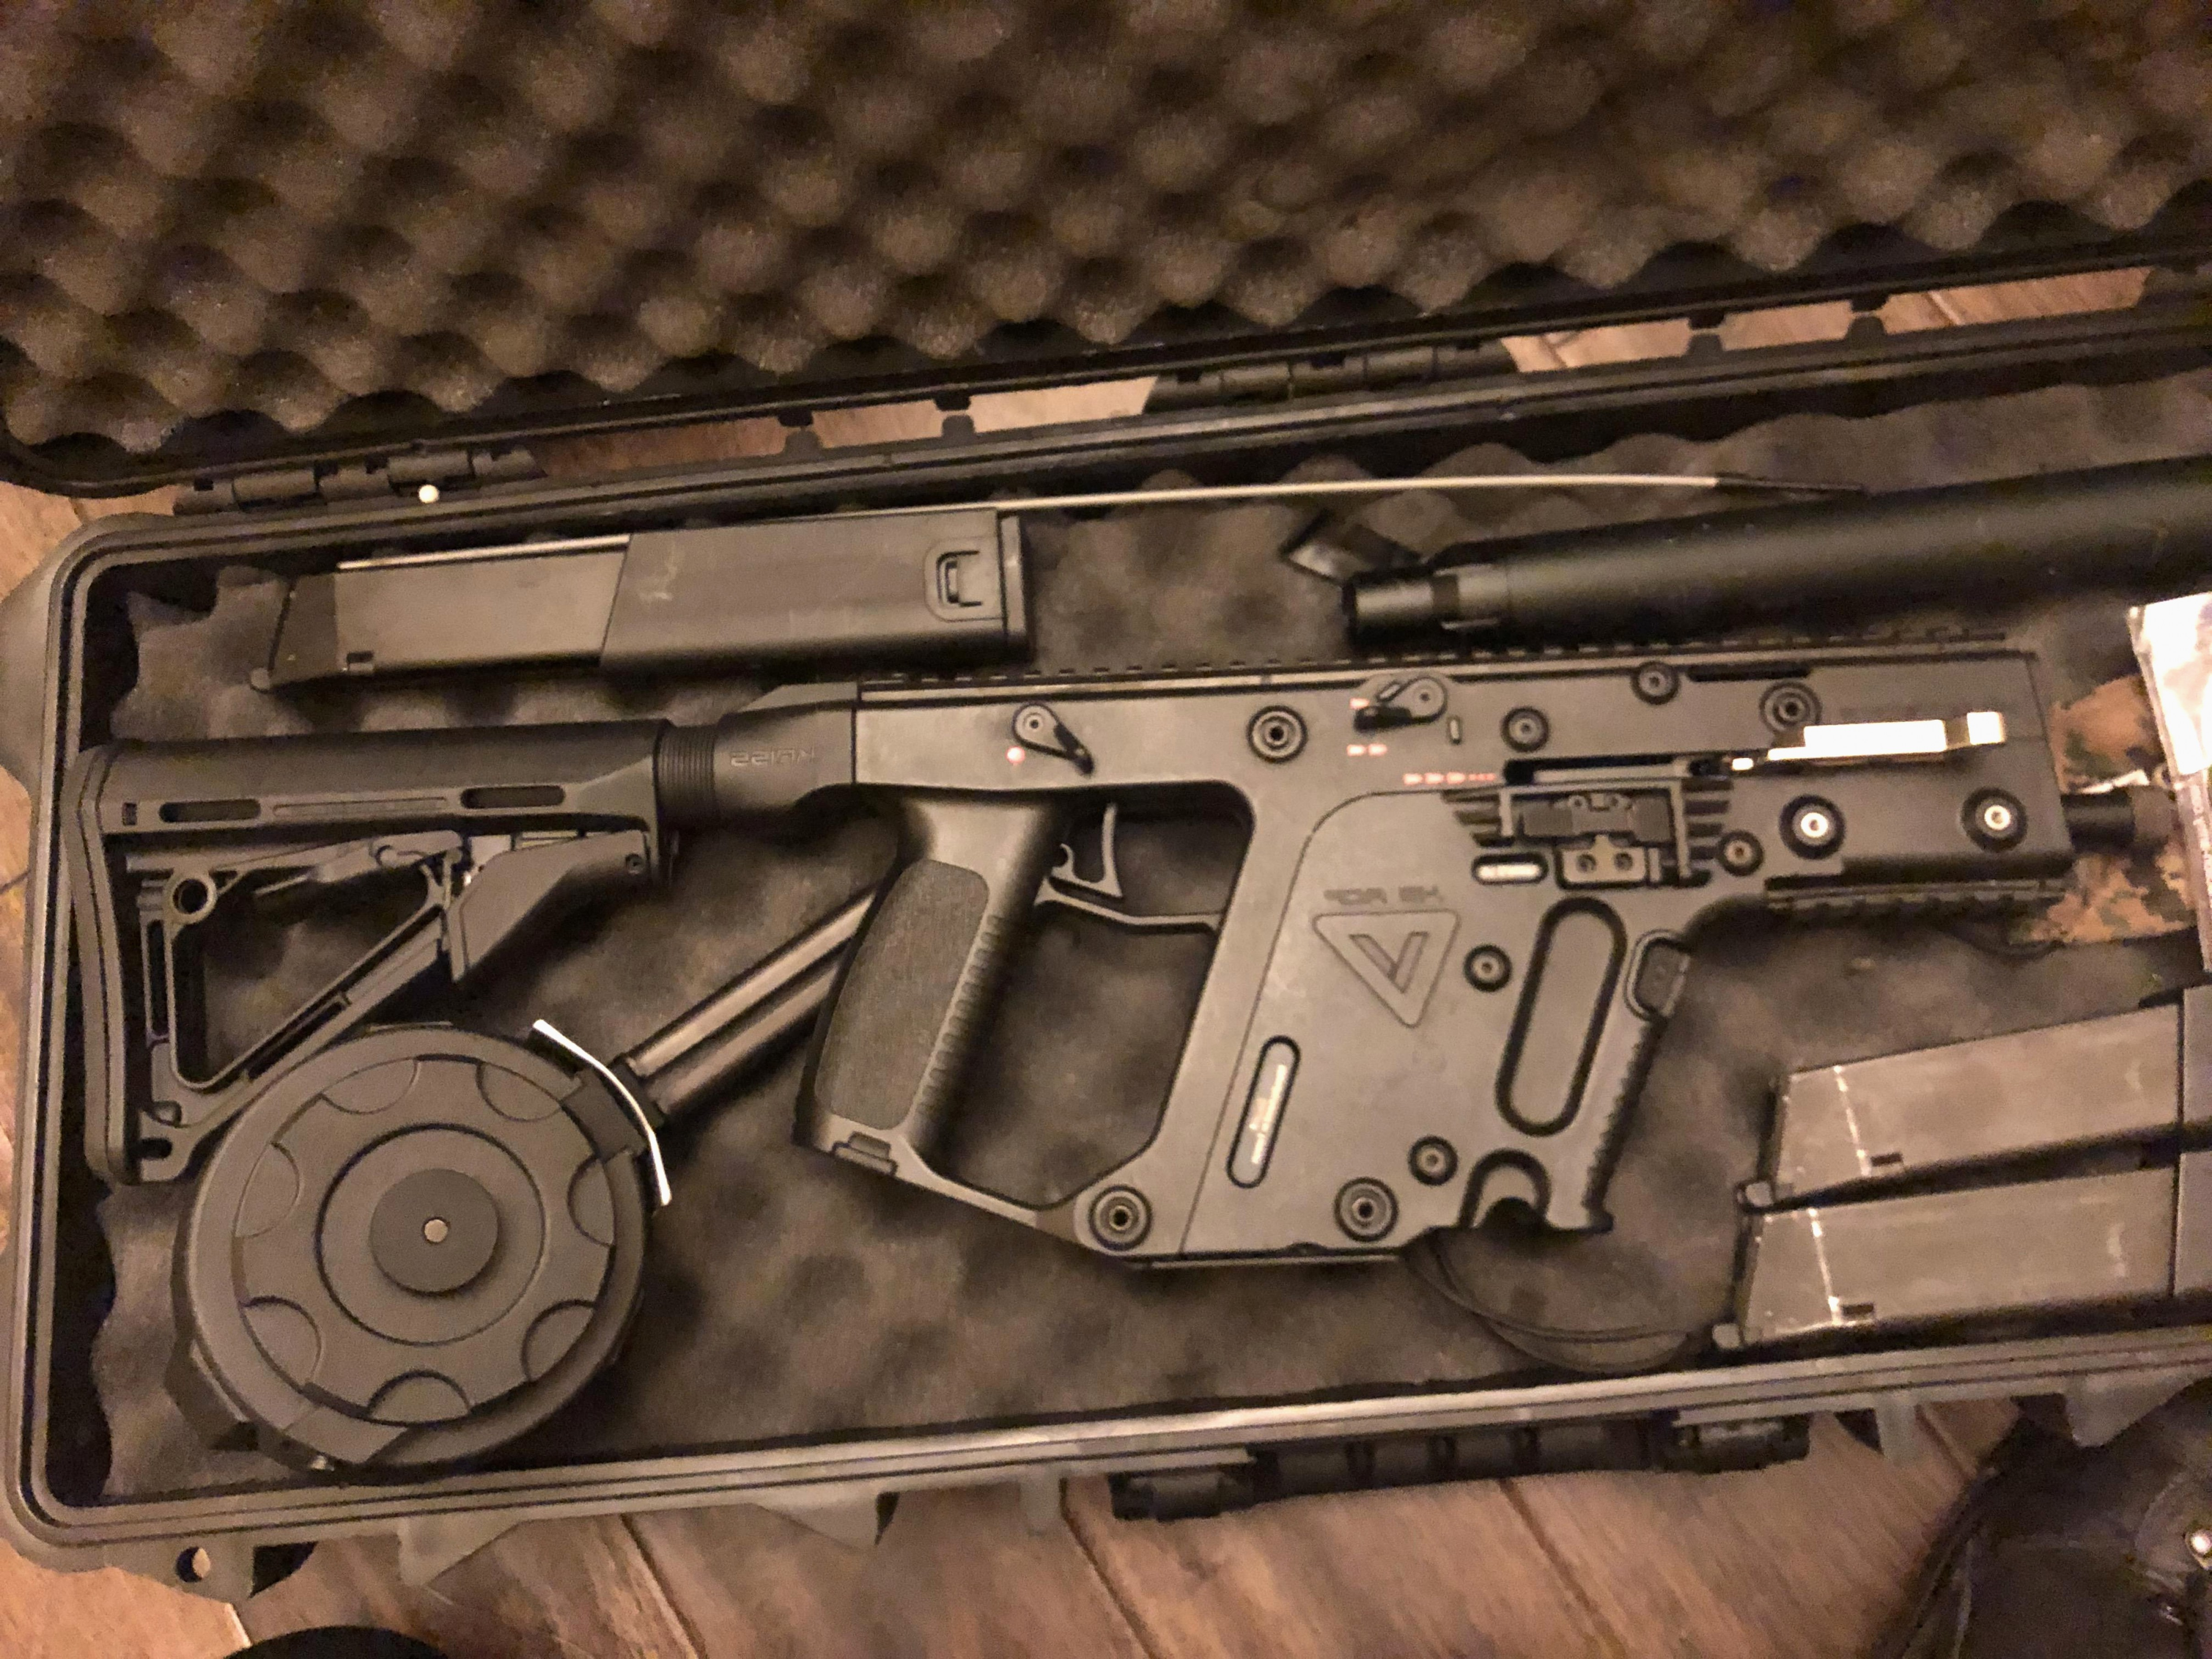 KWA KRISS Vector Parts: Kwa Kriss Vector Luxury A Moment Of Silence For This Kwa Kriss Vector Airsoft